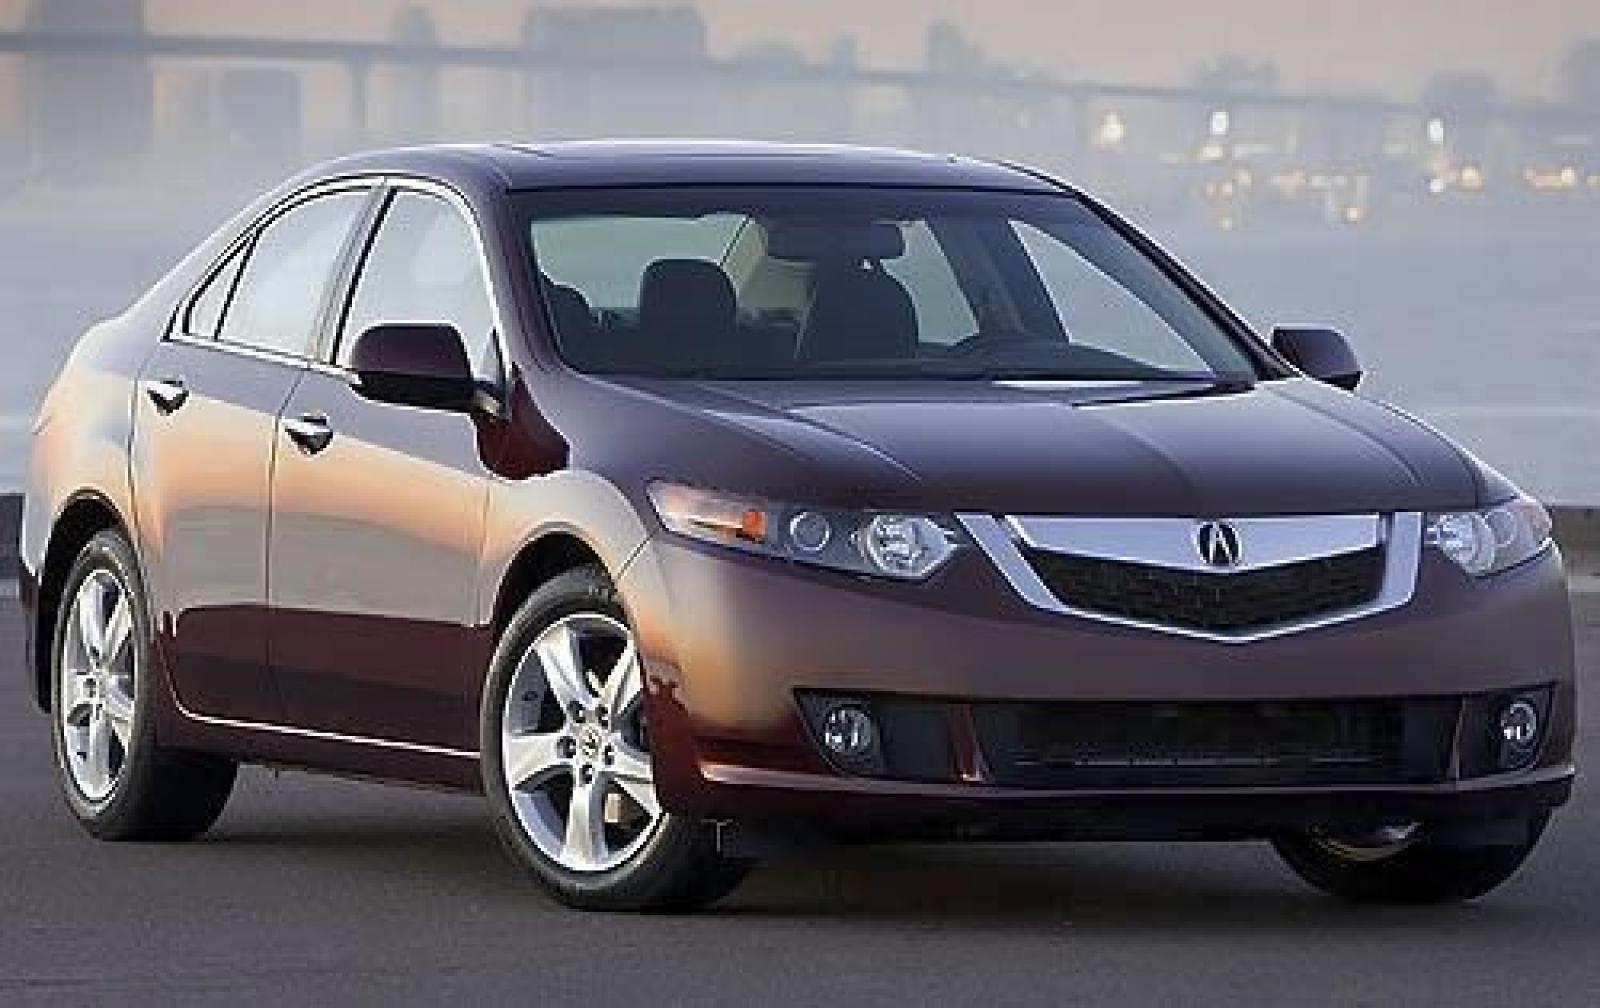 2009 acura tsx information and photos zombiedrive. Black Bedroom Furniture Sets. Home Design Ideas